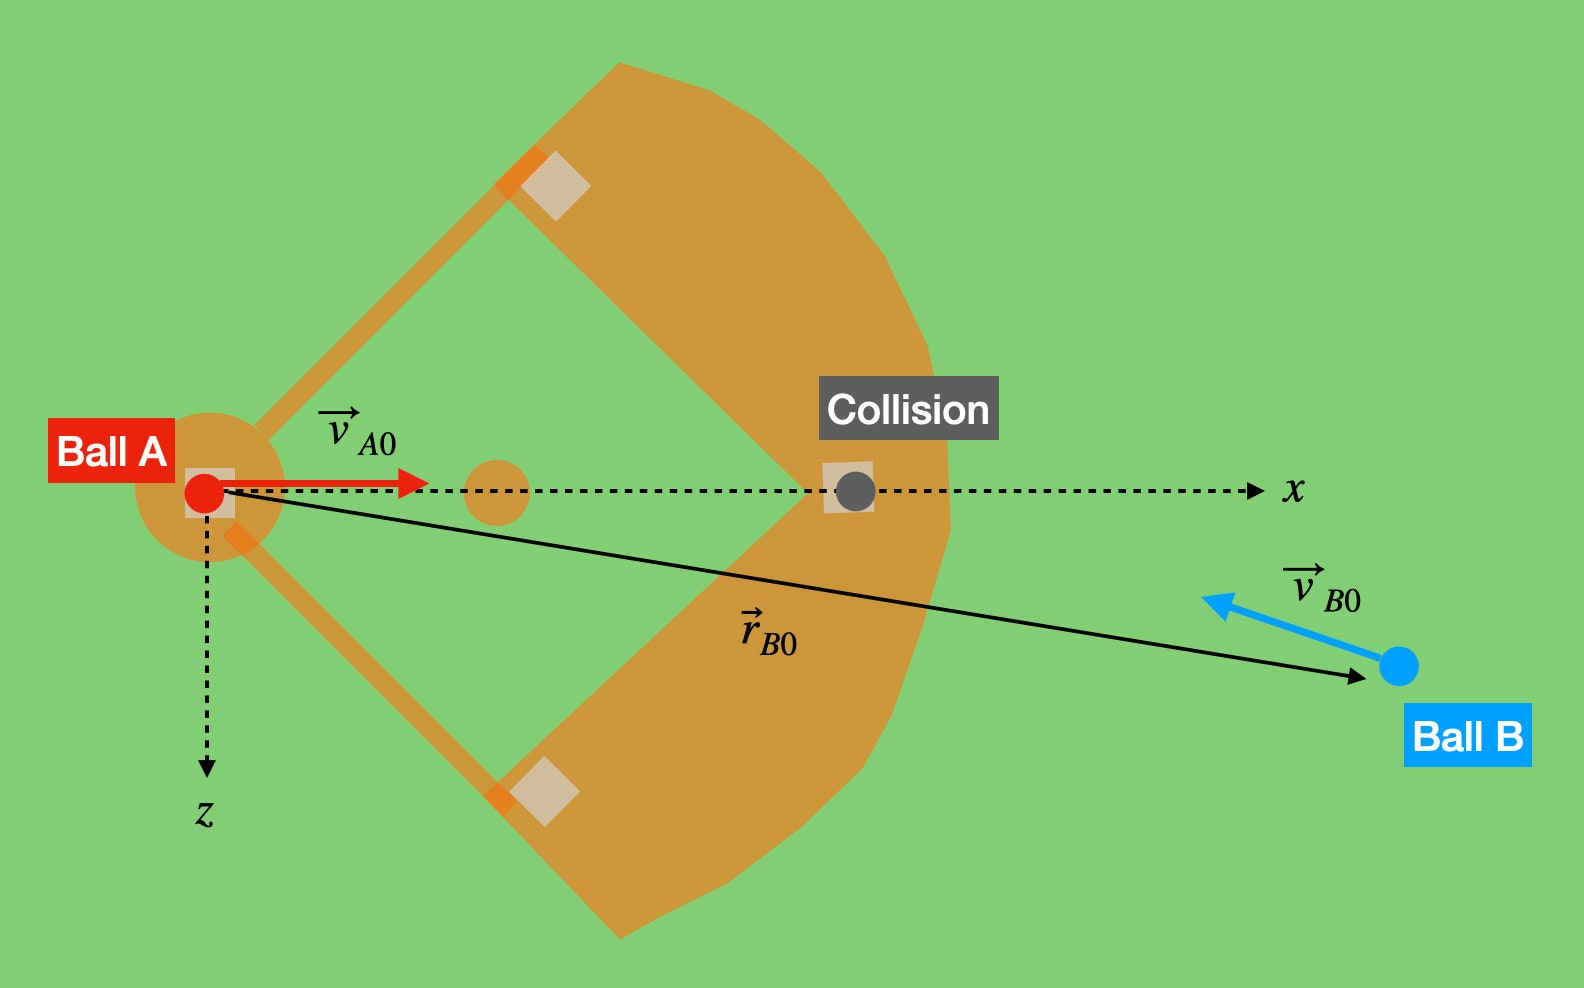 a simplified map of a baseball field showing the path of the two balls, where they collided, and basic physics formulas describing the paths